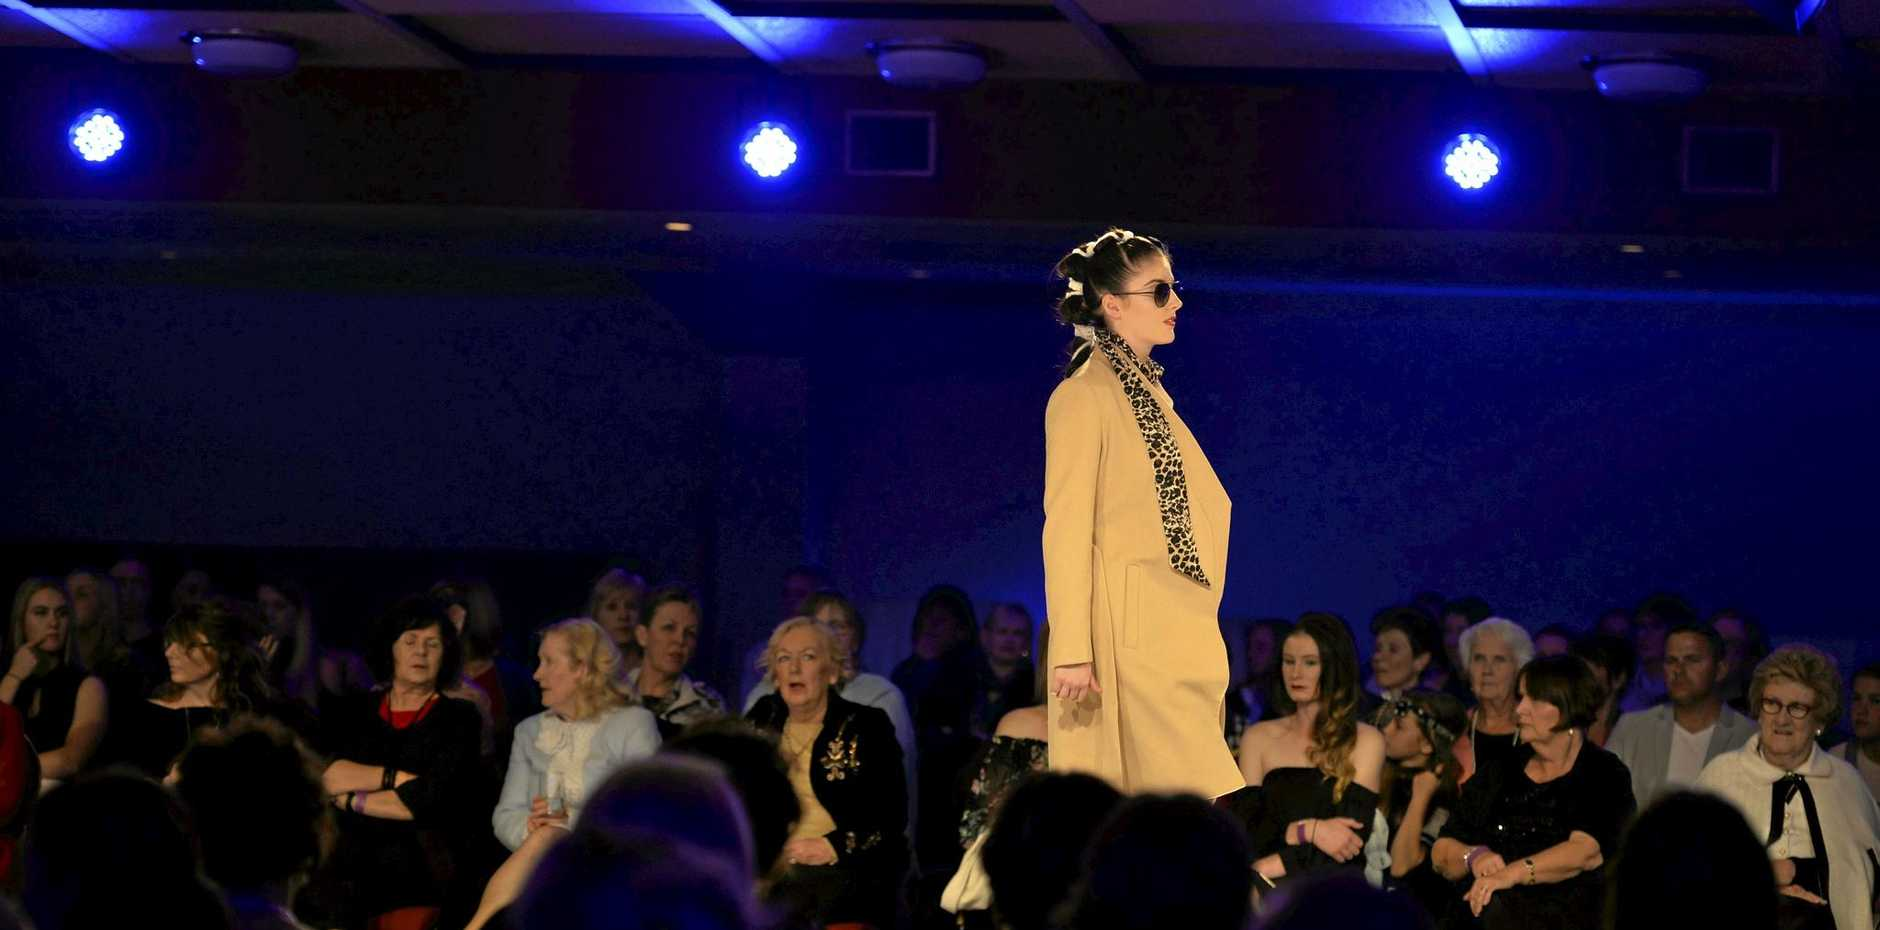 Lauren Creevey models at Stepping Out Winter Glamour event at Rumours International, Saturday, July 29, 2017.